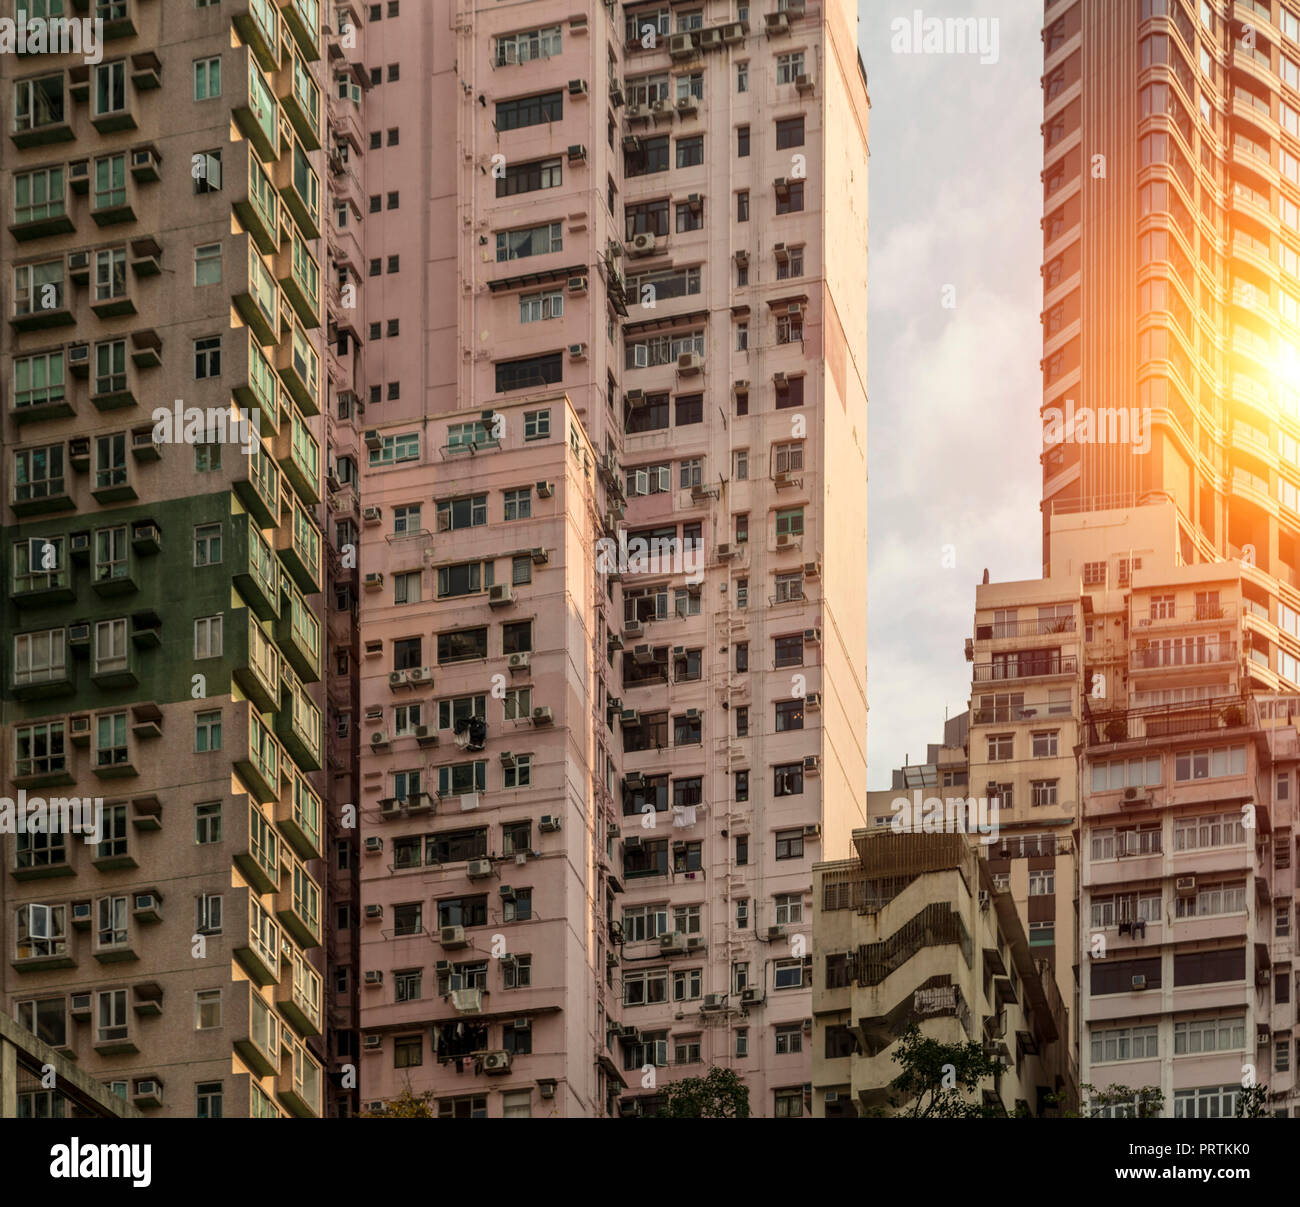 Hong Kong Apartments: Affordable Housing Stock Photos & Affordable Housing Stock